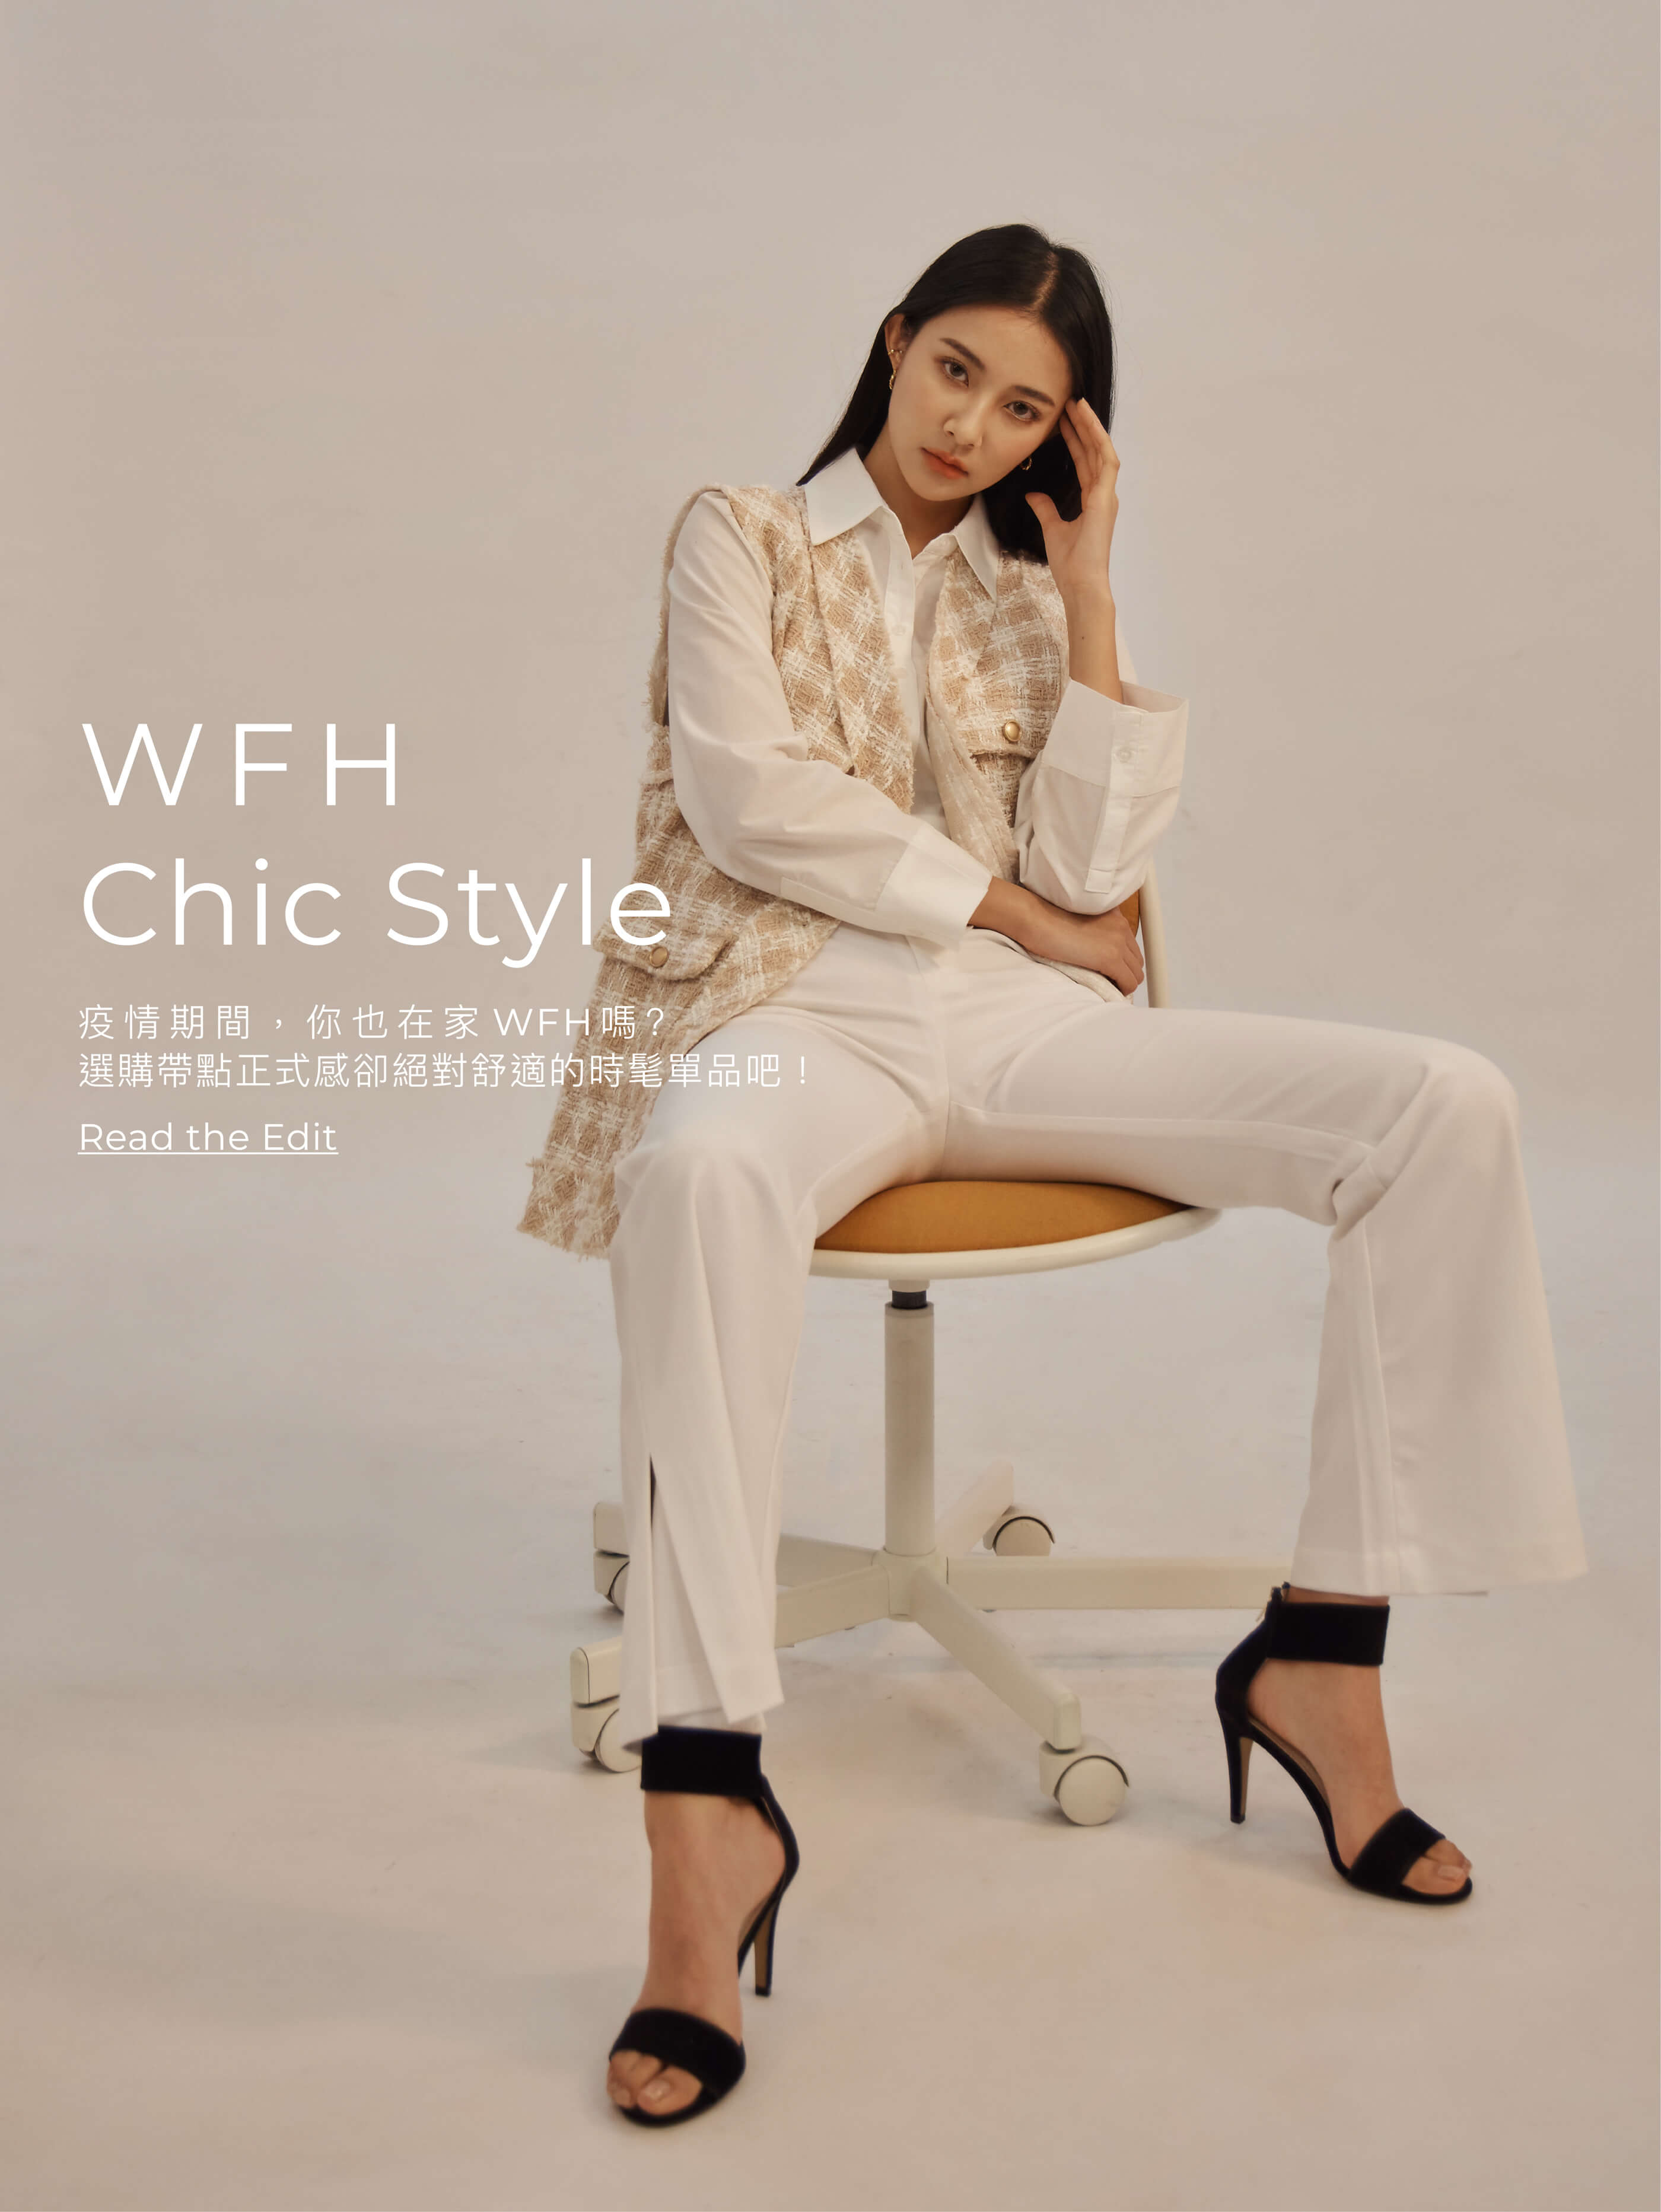 WFH Chic Style